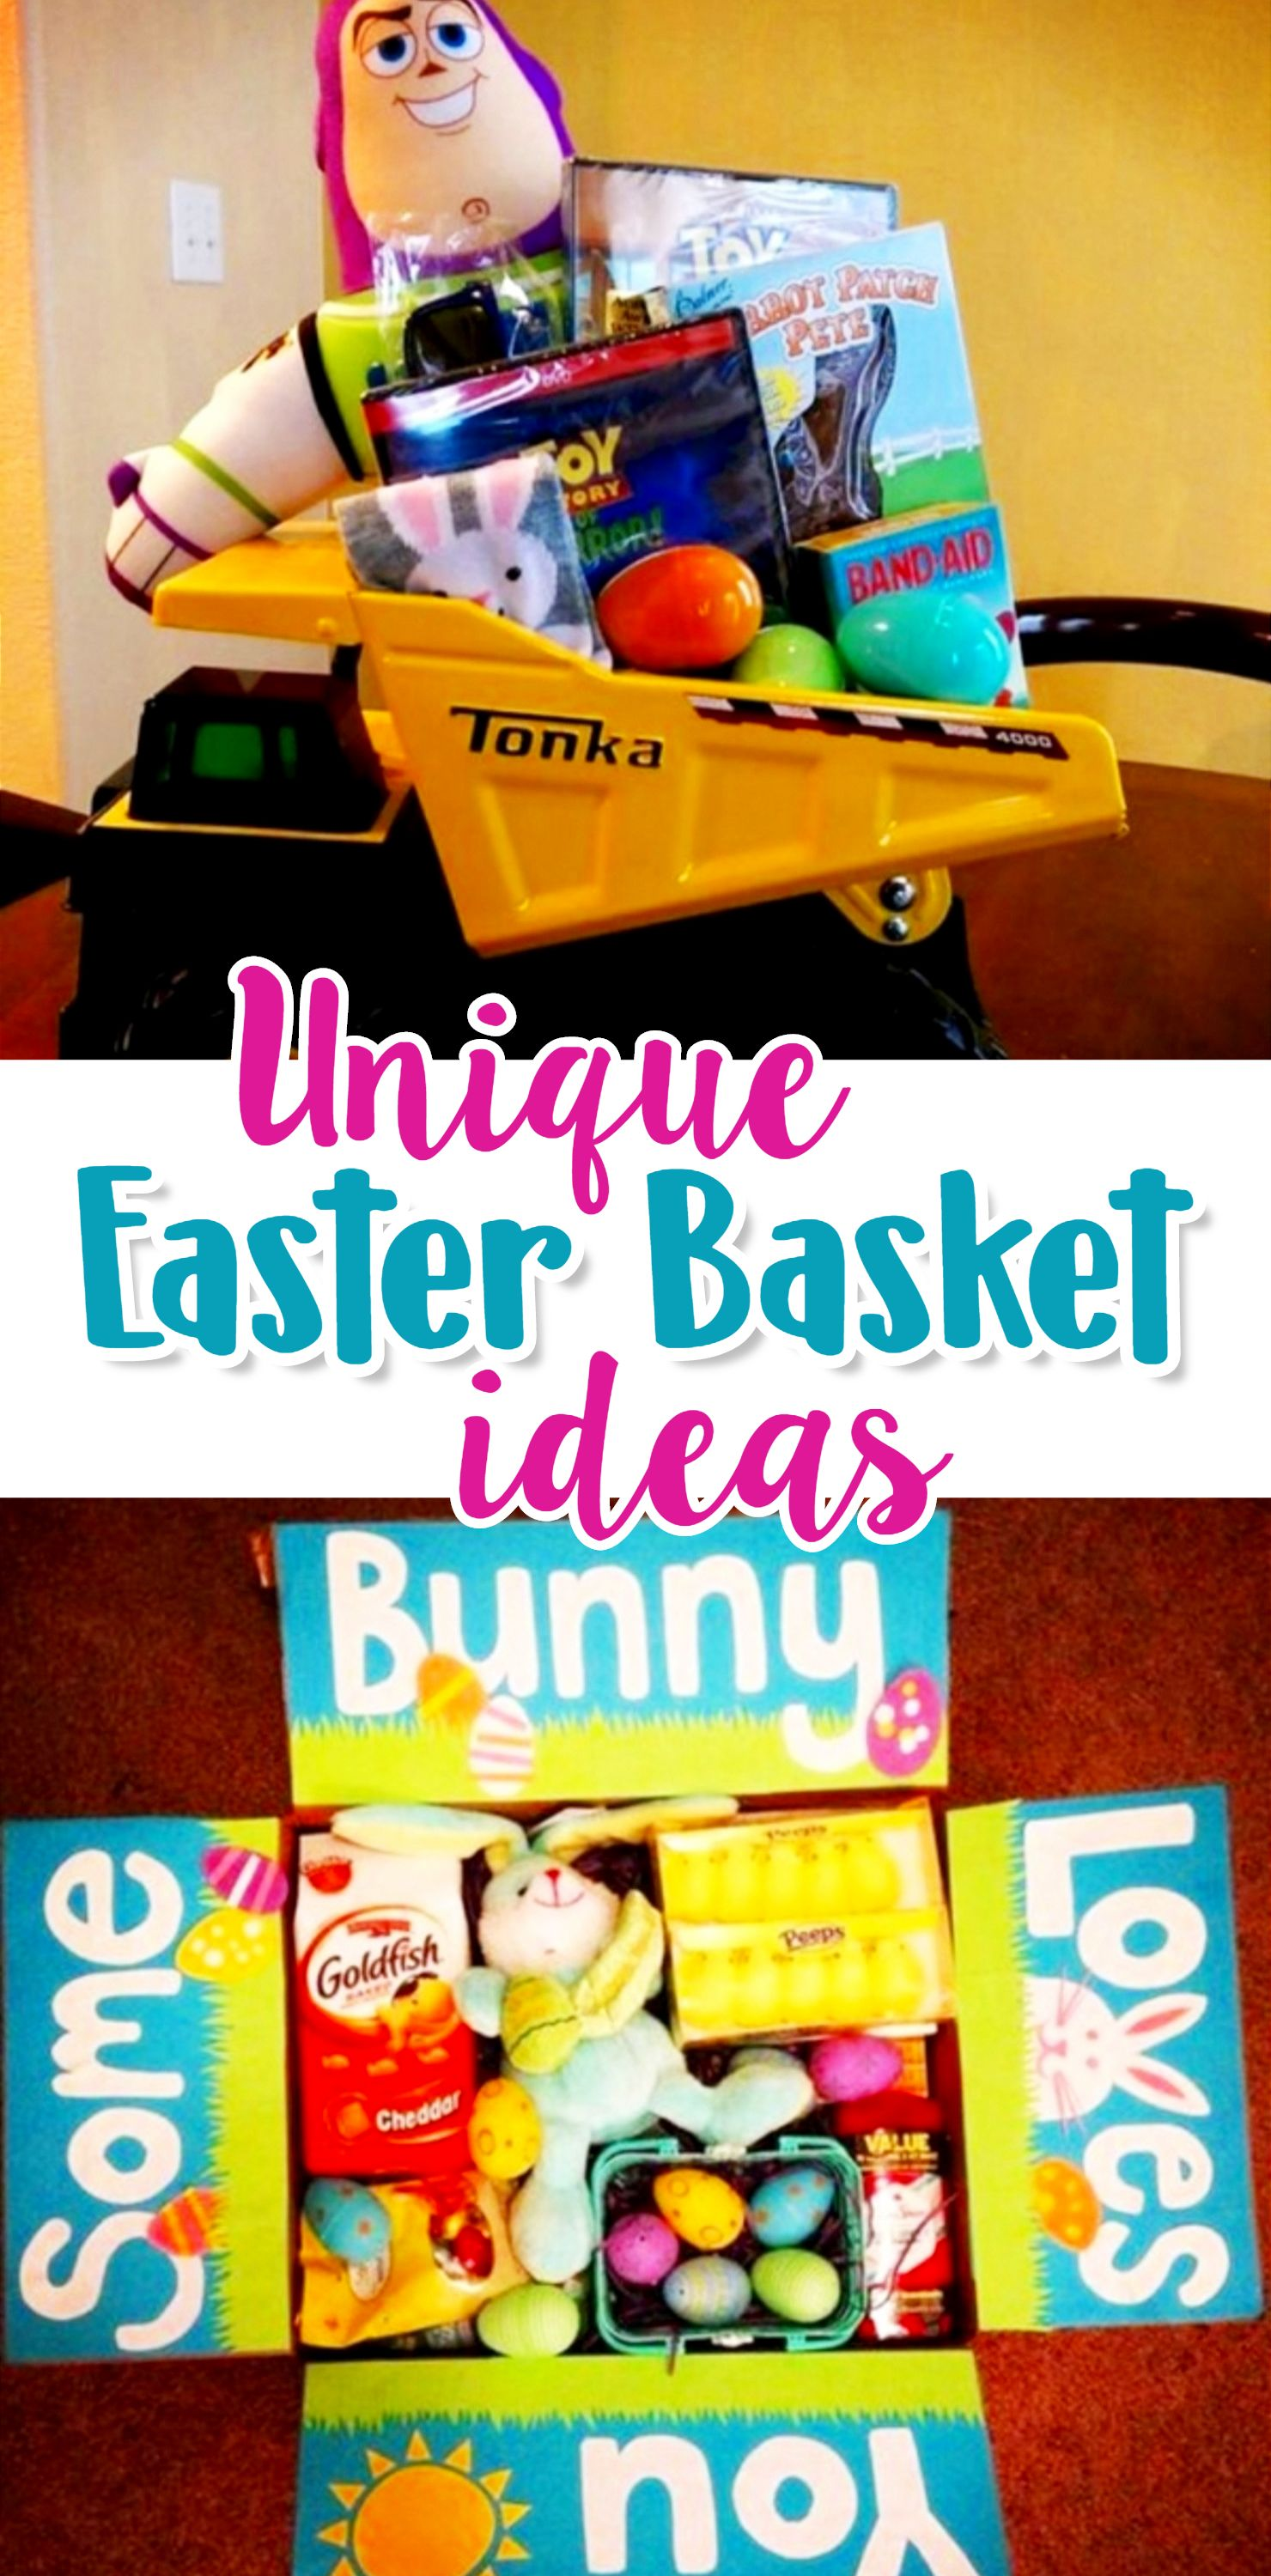 Easter diy unique and creative diy easter ideas for the whole easter diy unique and creative diy easter ideas for the whole family unique easter basket ideas basket ideas and easter baskets negle Image collections